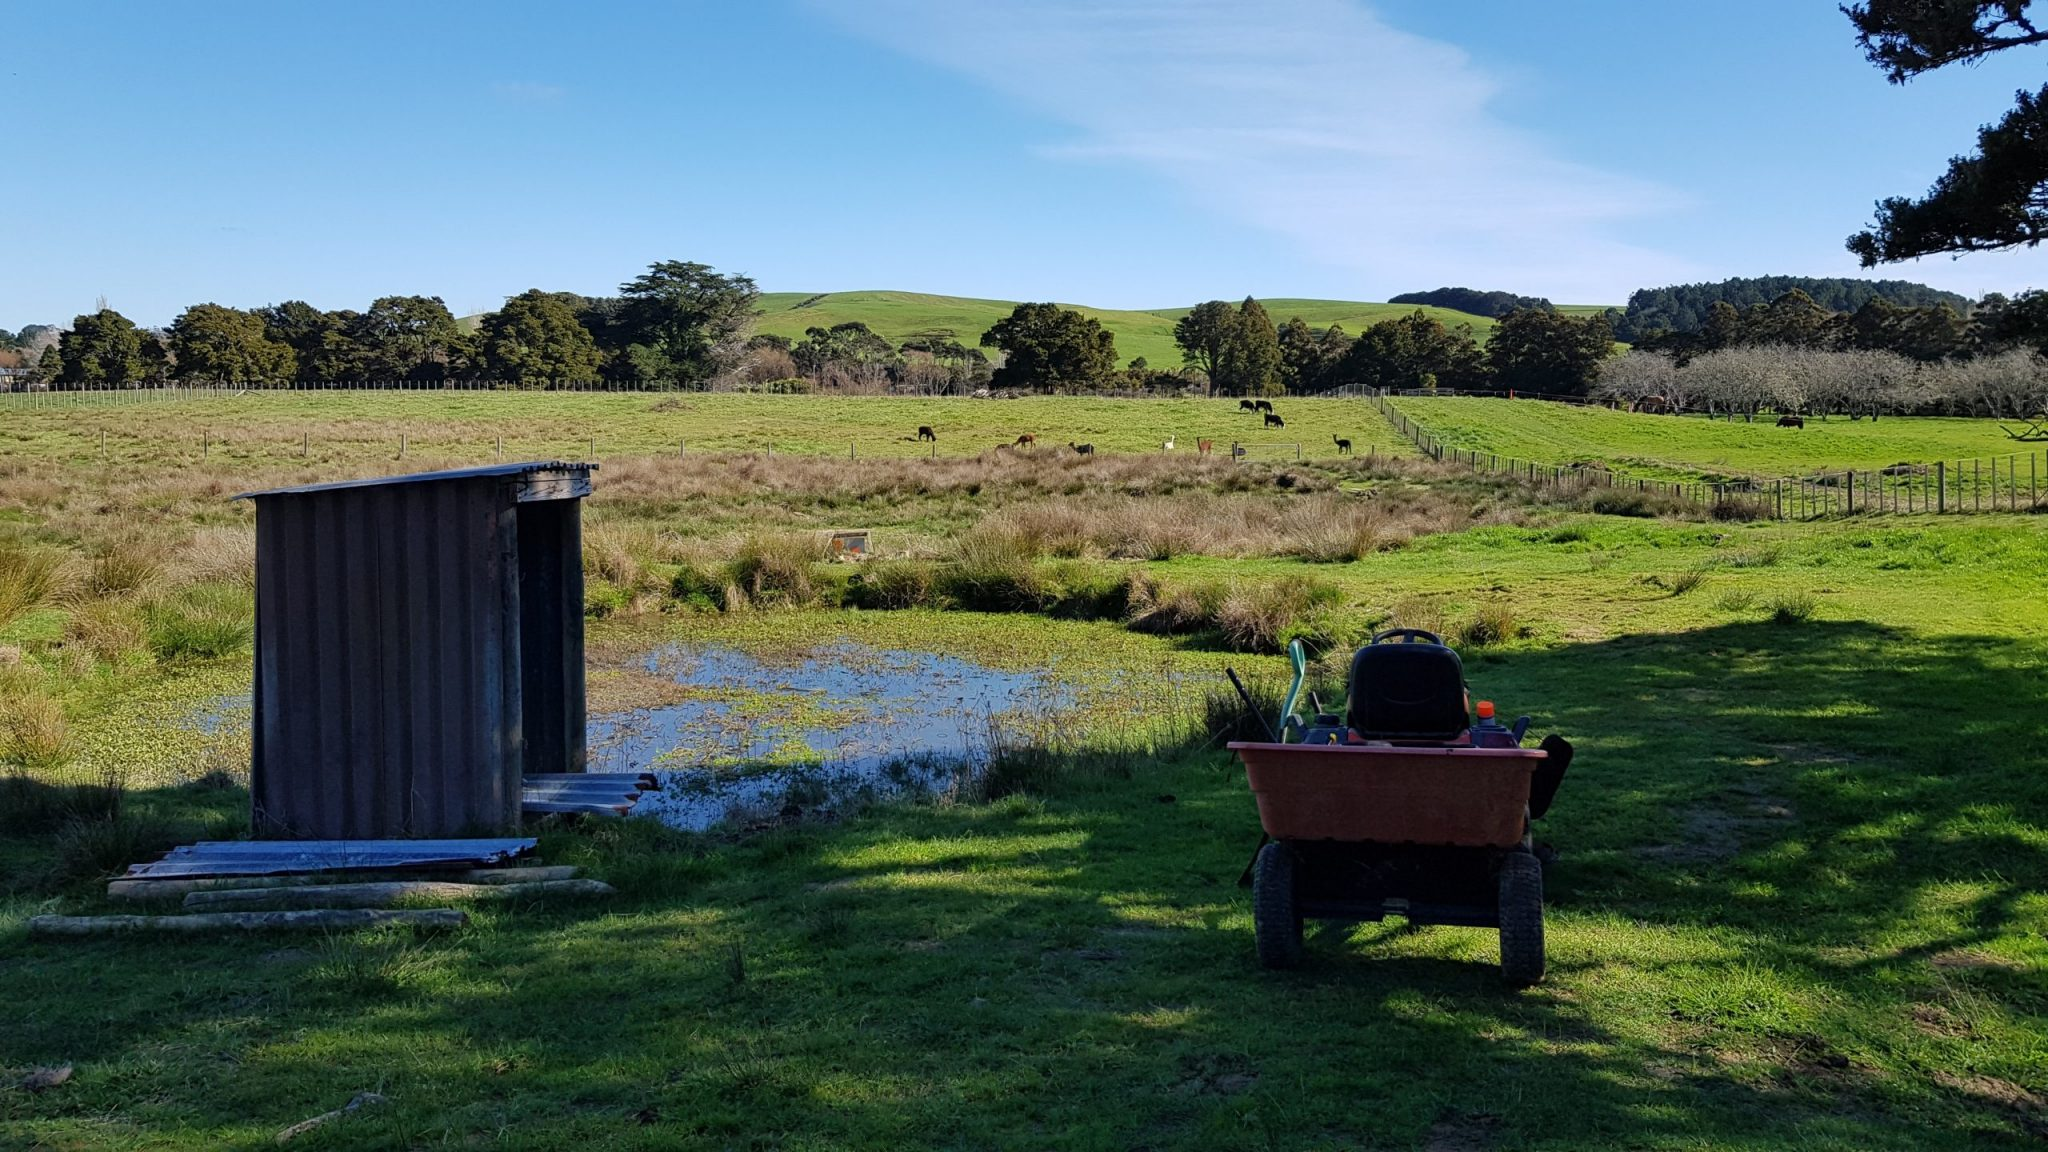 Ride-on mower parked in front of a green growth covered pond in front of paddocks and alpacas in the distance